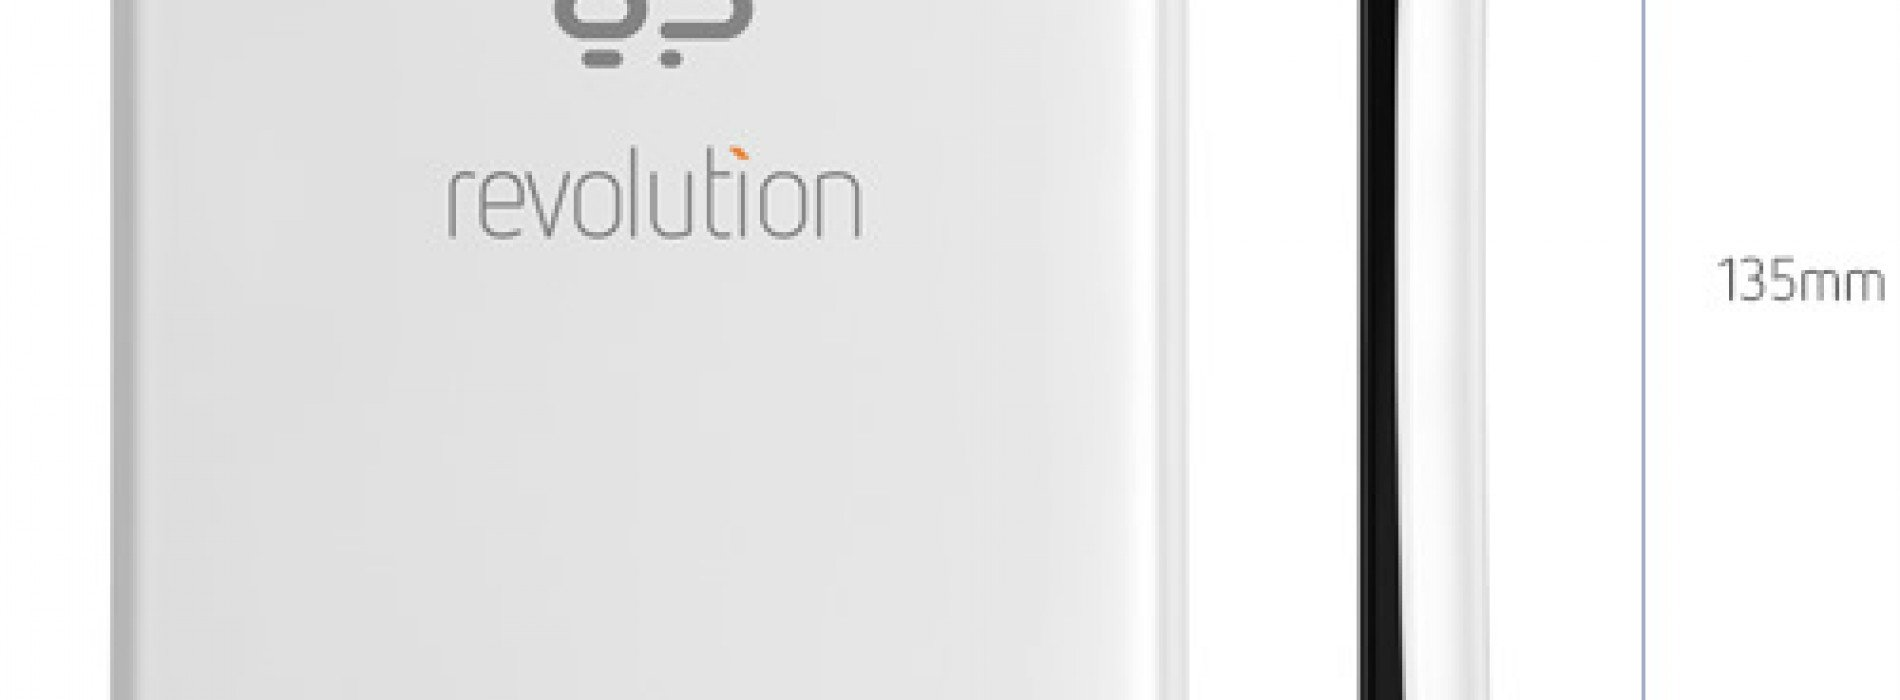 Geeksphone Revolution comes with Android and Firefox OS